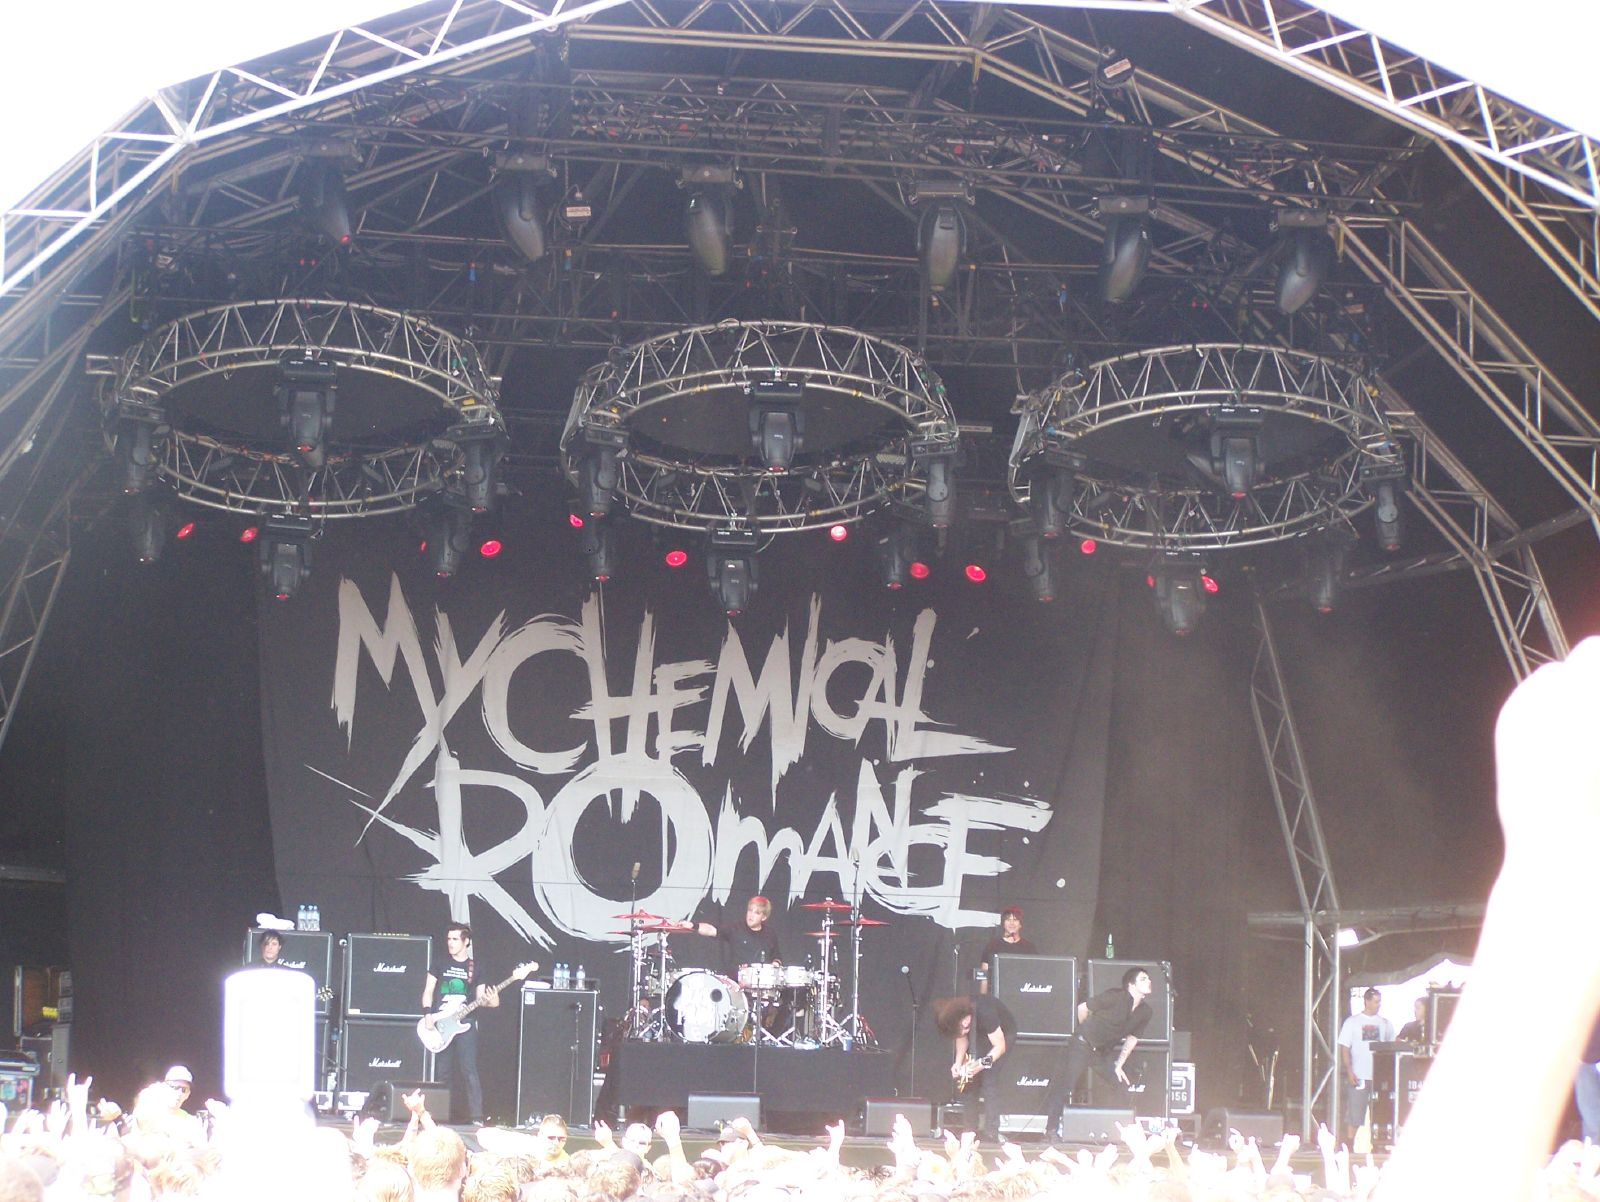 A MCR gig at a festival, huge banner saying MCR and the playing on stage.